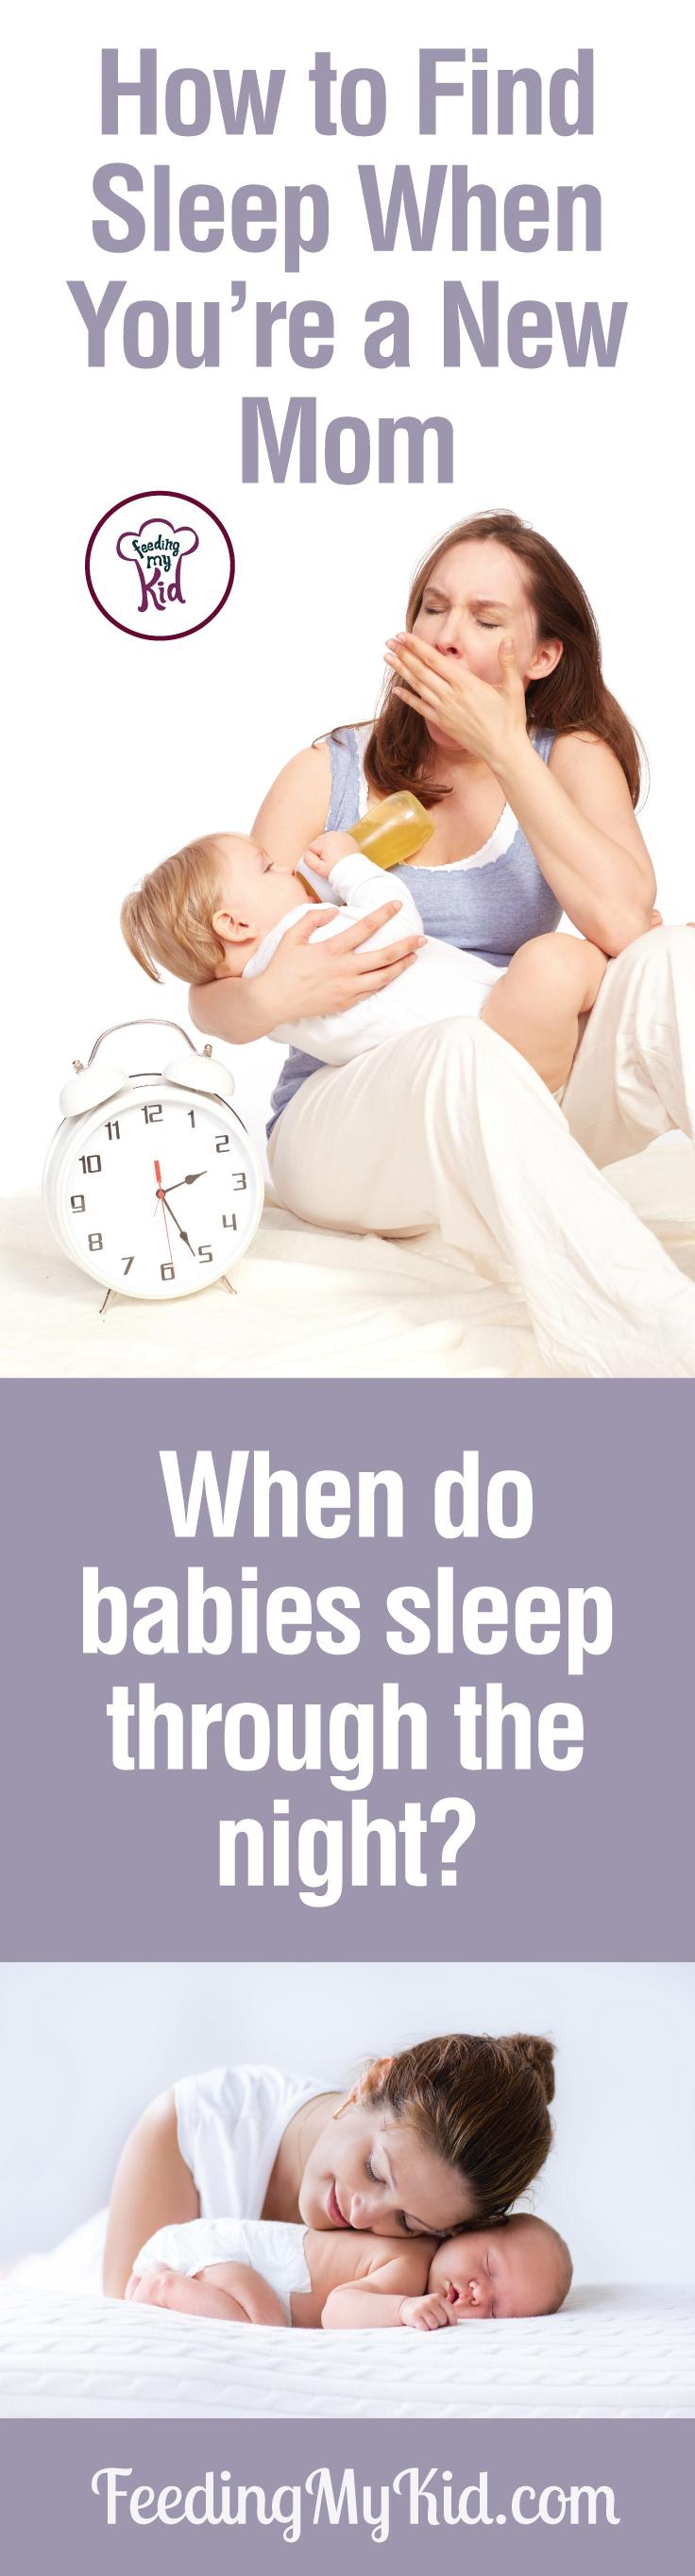 Feeling sleep-deprived as a new mom? The struggle is real. Here's the best advice on how to find sleep when you're a new mom and when do babies sleep through the night. Feeding My Kid is filled with all the information you need about how to raise your kids, from healthy tips to nutritious recipes. #FeedingMyKid #newborn #newbornbaby #babywon'tsleep #babysleep #whendobabiessleepthroughthenight #babysleeptraining #howtomakebabysleep #sleepingthroughthenight